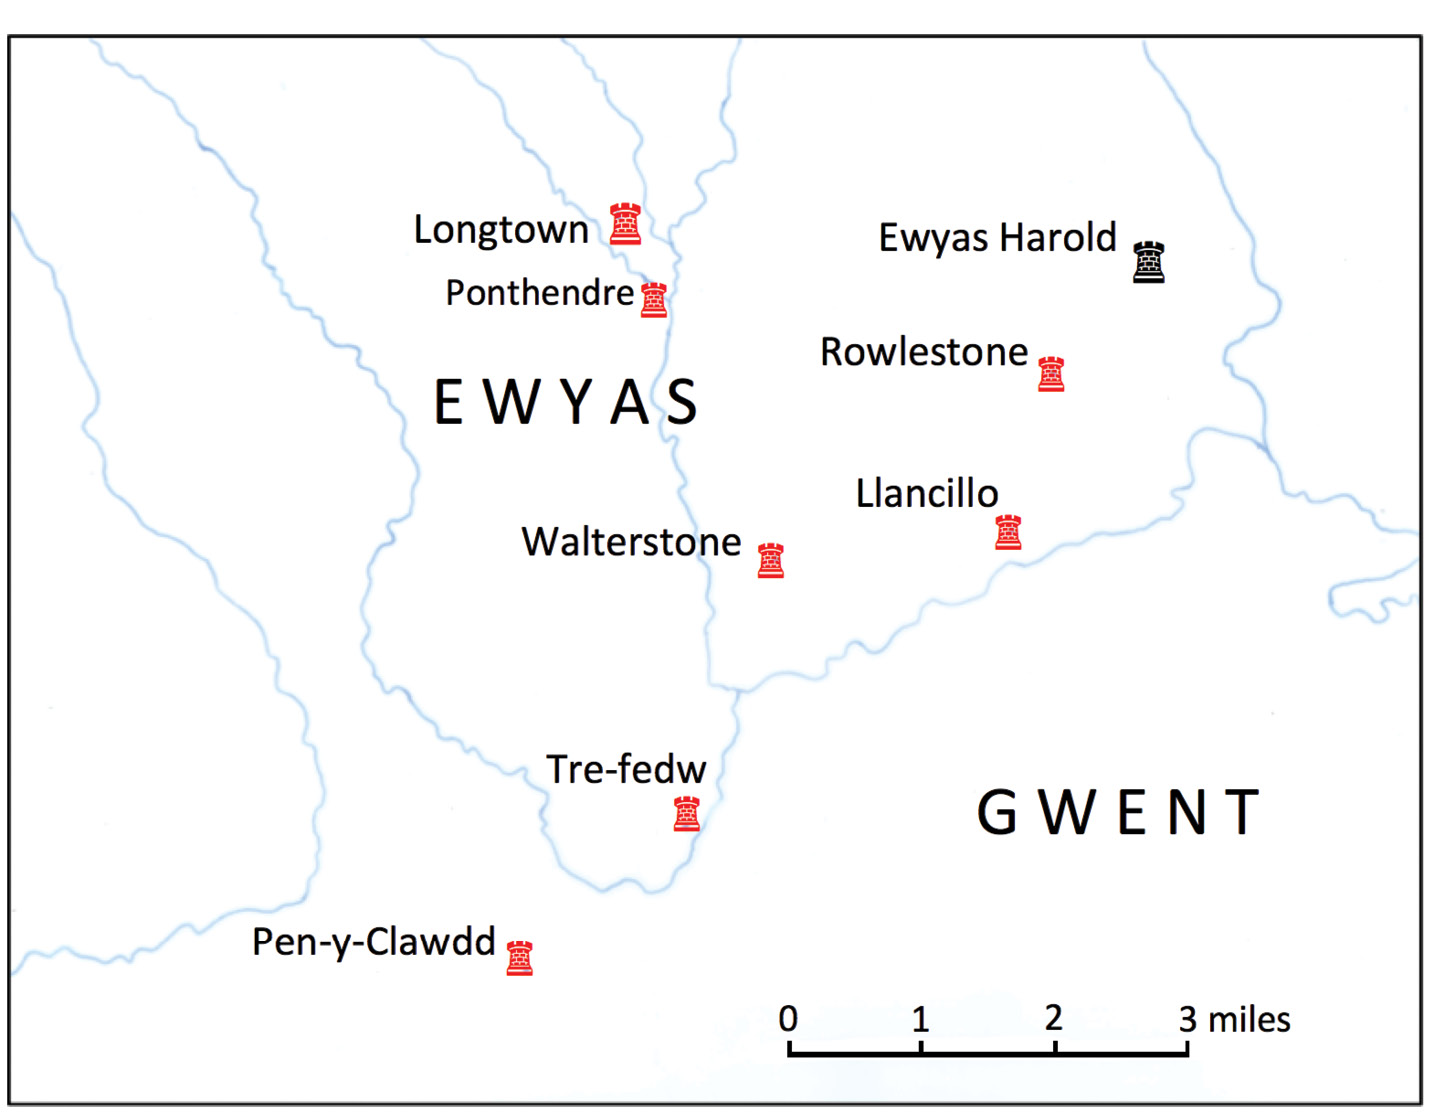 above Bordering the ancient Kingdom of Gwent, the March of Ewyas is located at the southern end of a series of deep valleys whose streams and brooks feed into the Usk, Monnow, and Wye. One interpretation of the name Ewyas is 'land of streams', but other suggestions, all equally appropriate, include 'land of battles', 'ewes', 'yews', or 'hind' (female red deer).